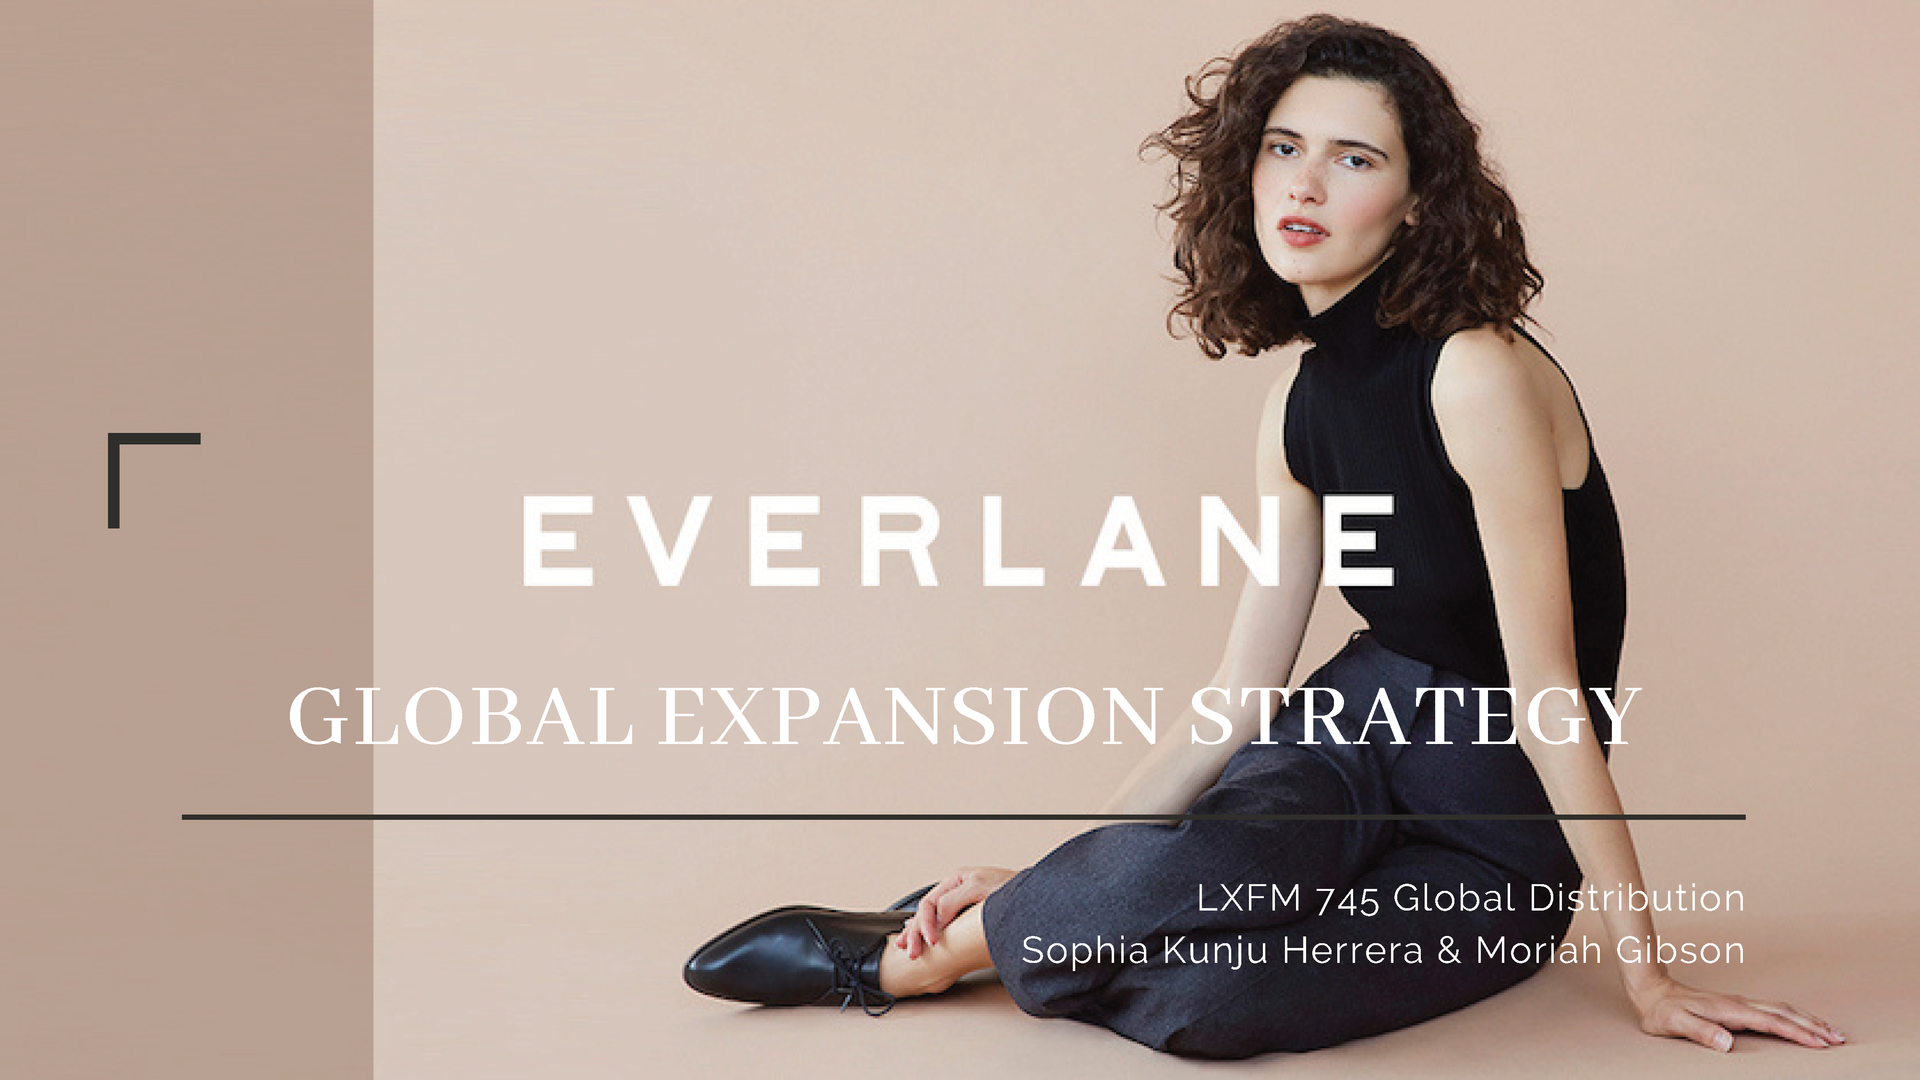 Global Expansion Strategy-Everlane